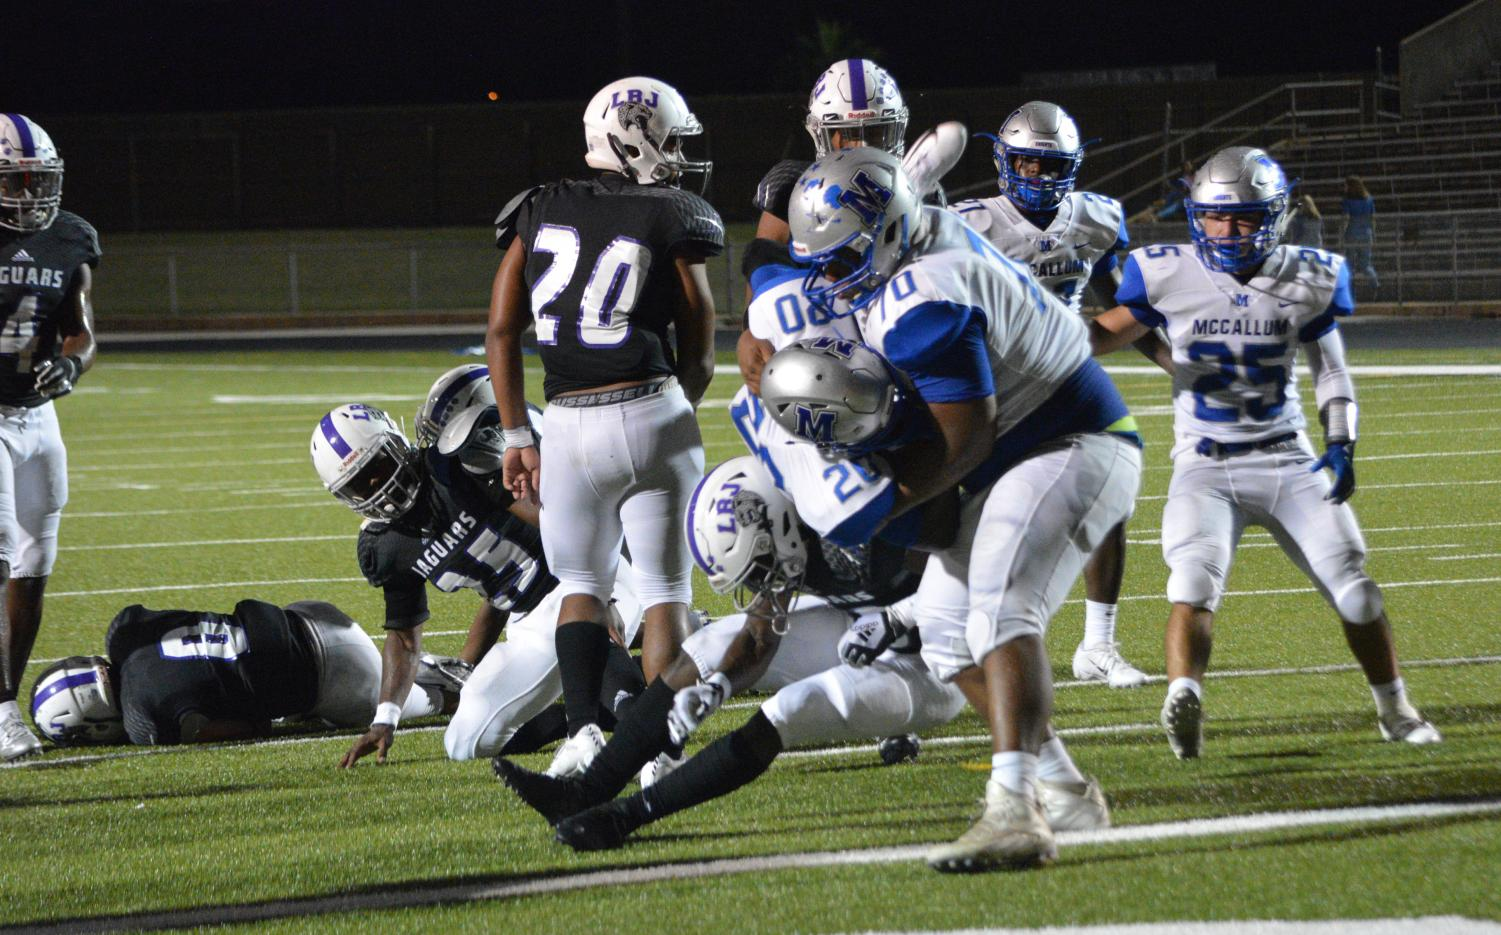 Alvino Carbajal has carried a huge load all season as he did in the LBJ game when he literally helped Deron Gage into the end zone for a touchdown. Both Carbajal and Gage have helped the team on offense and on defense this year. Photo by Dave Winter.